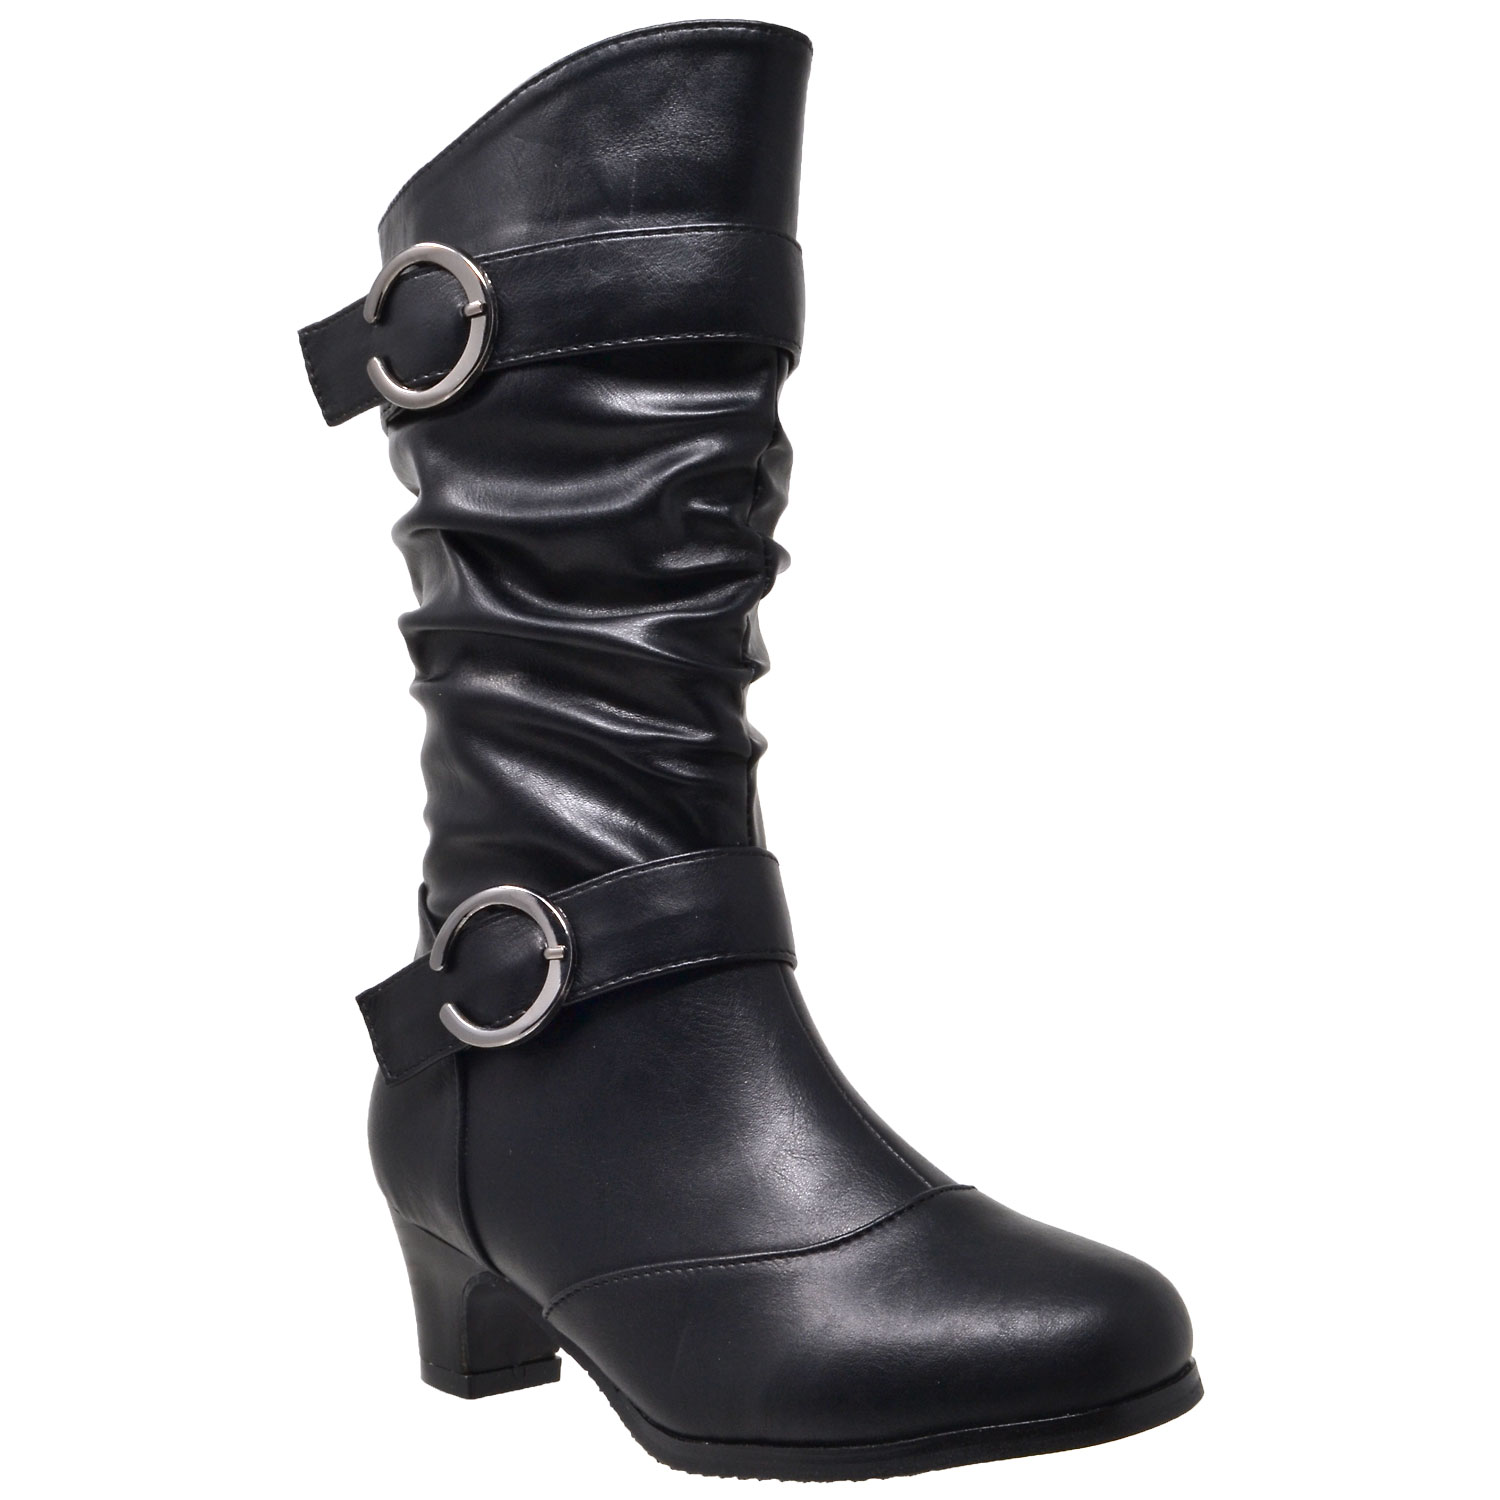 ed533e0c3779 Details about Kids Mid Calf Boots Double Buckle Zip Close High Heel Shoes  Black